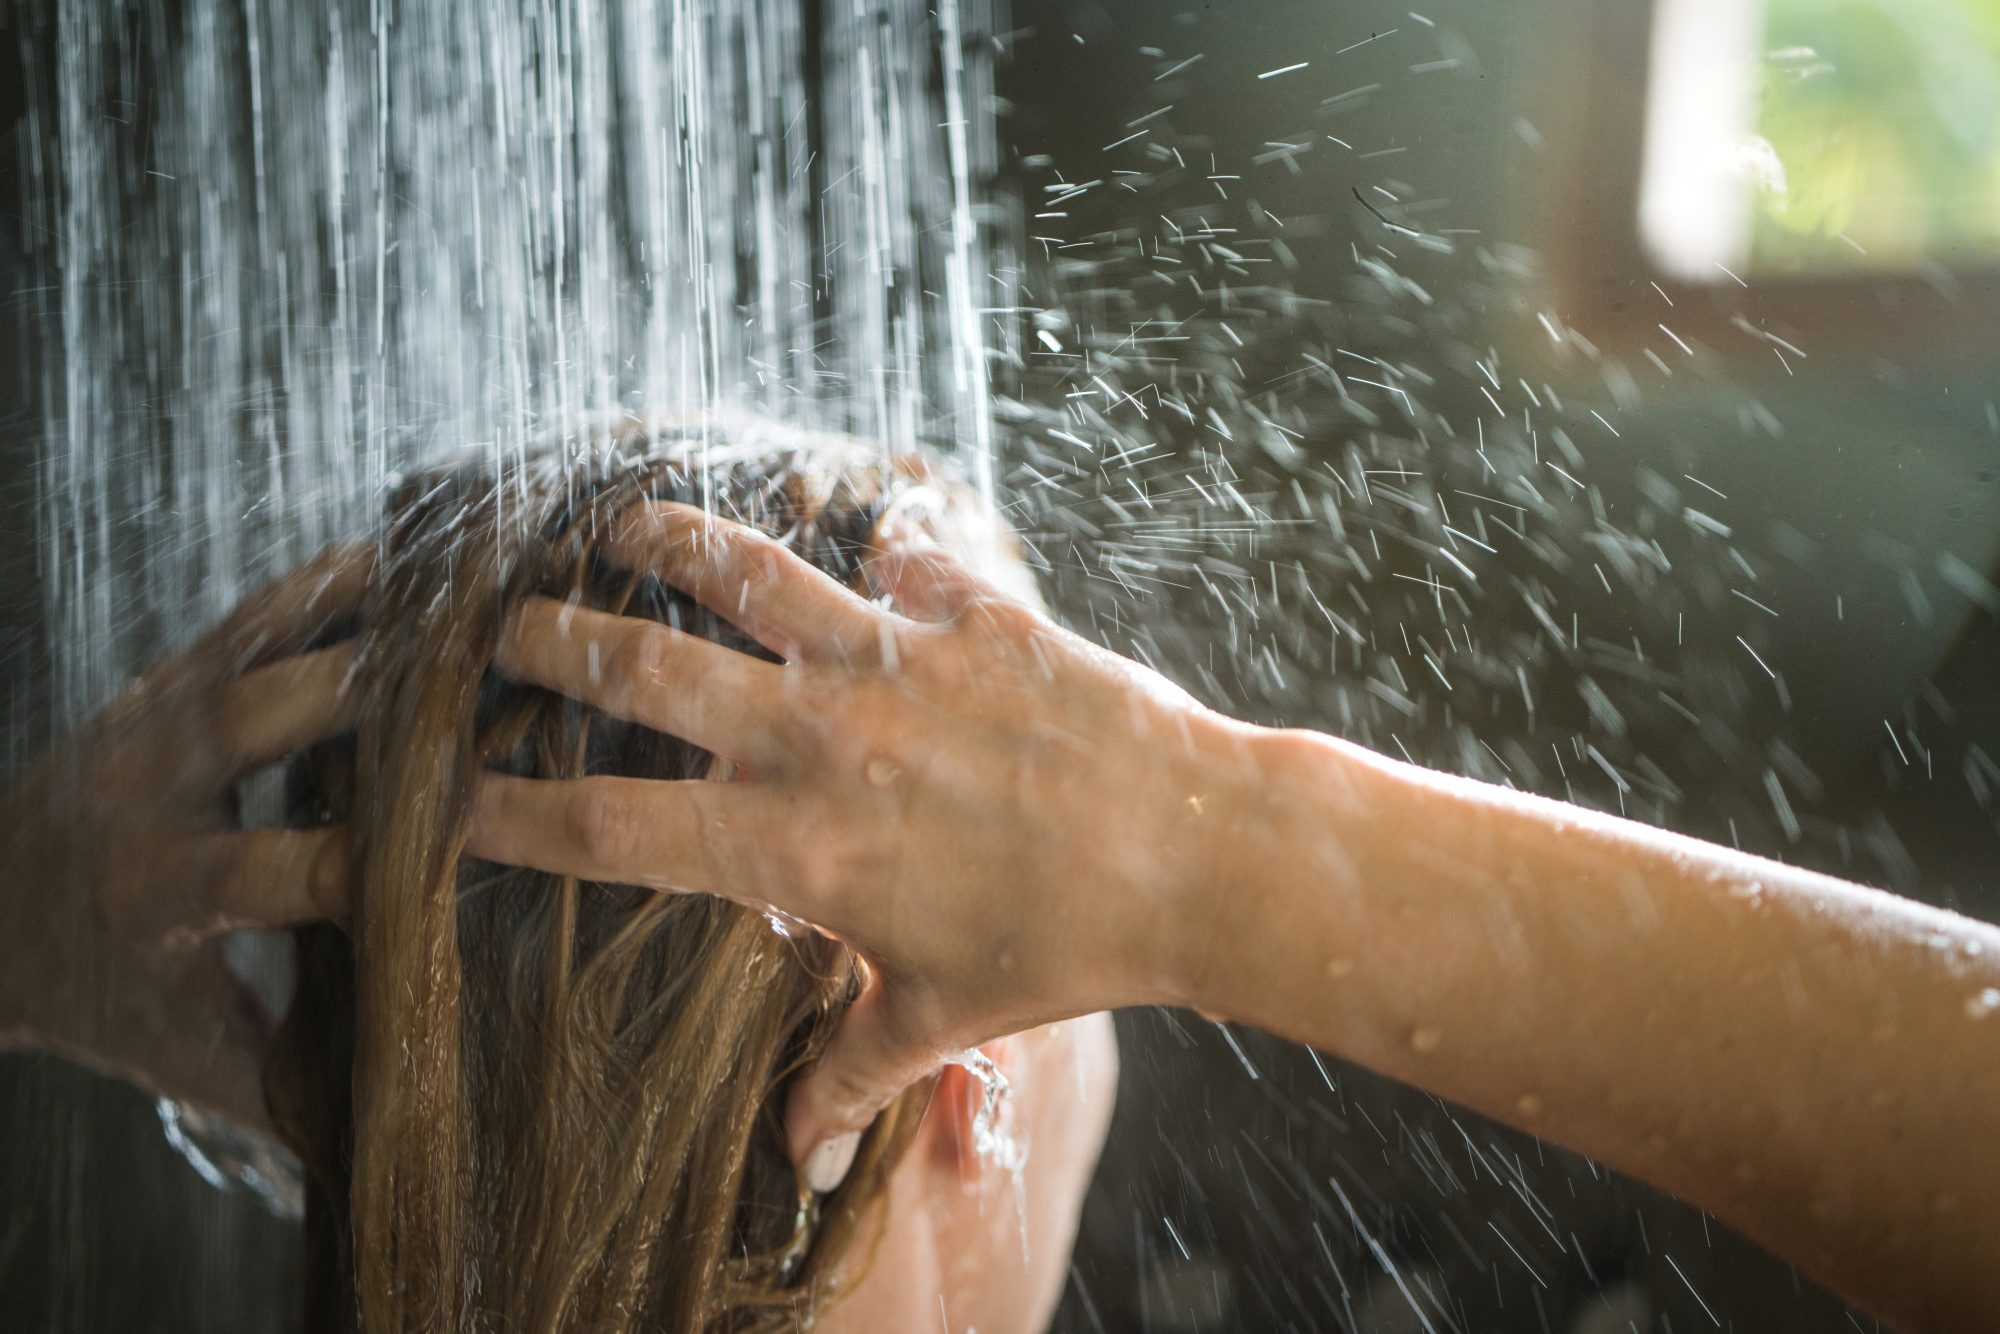 Close up of unrecognizable woman washing her hair under the shower.